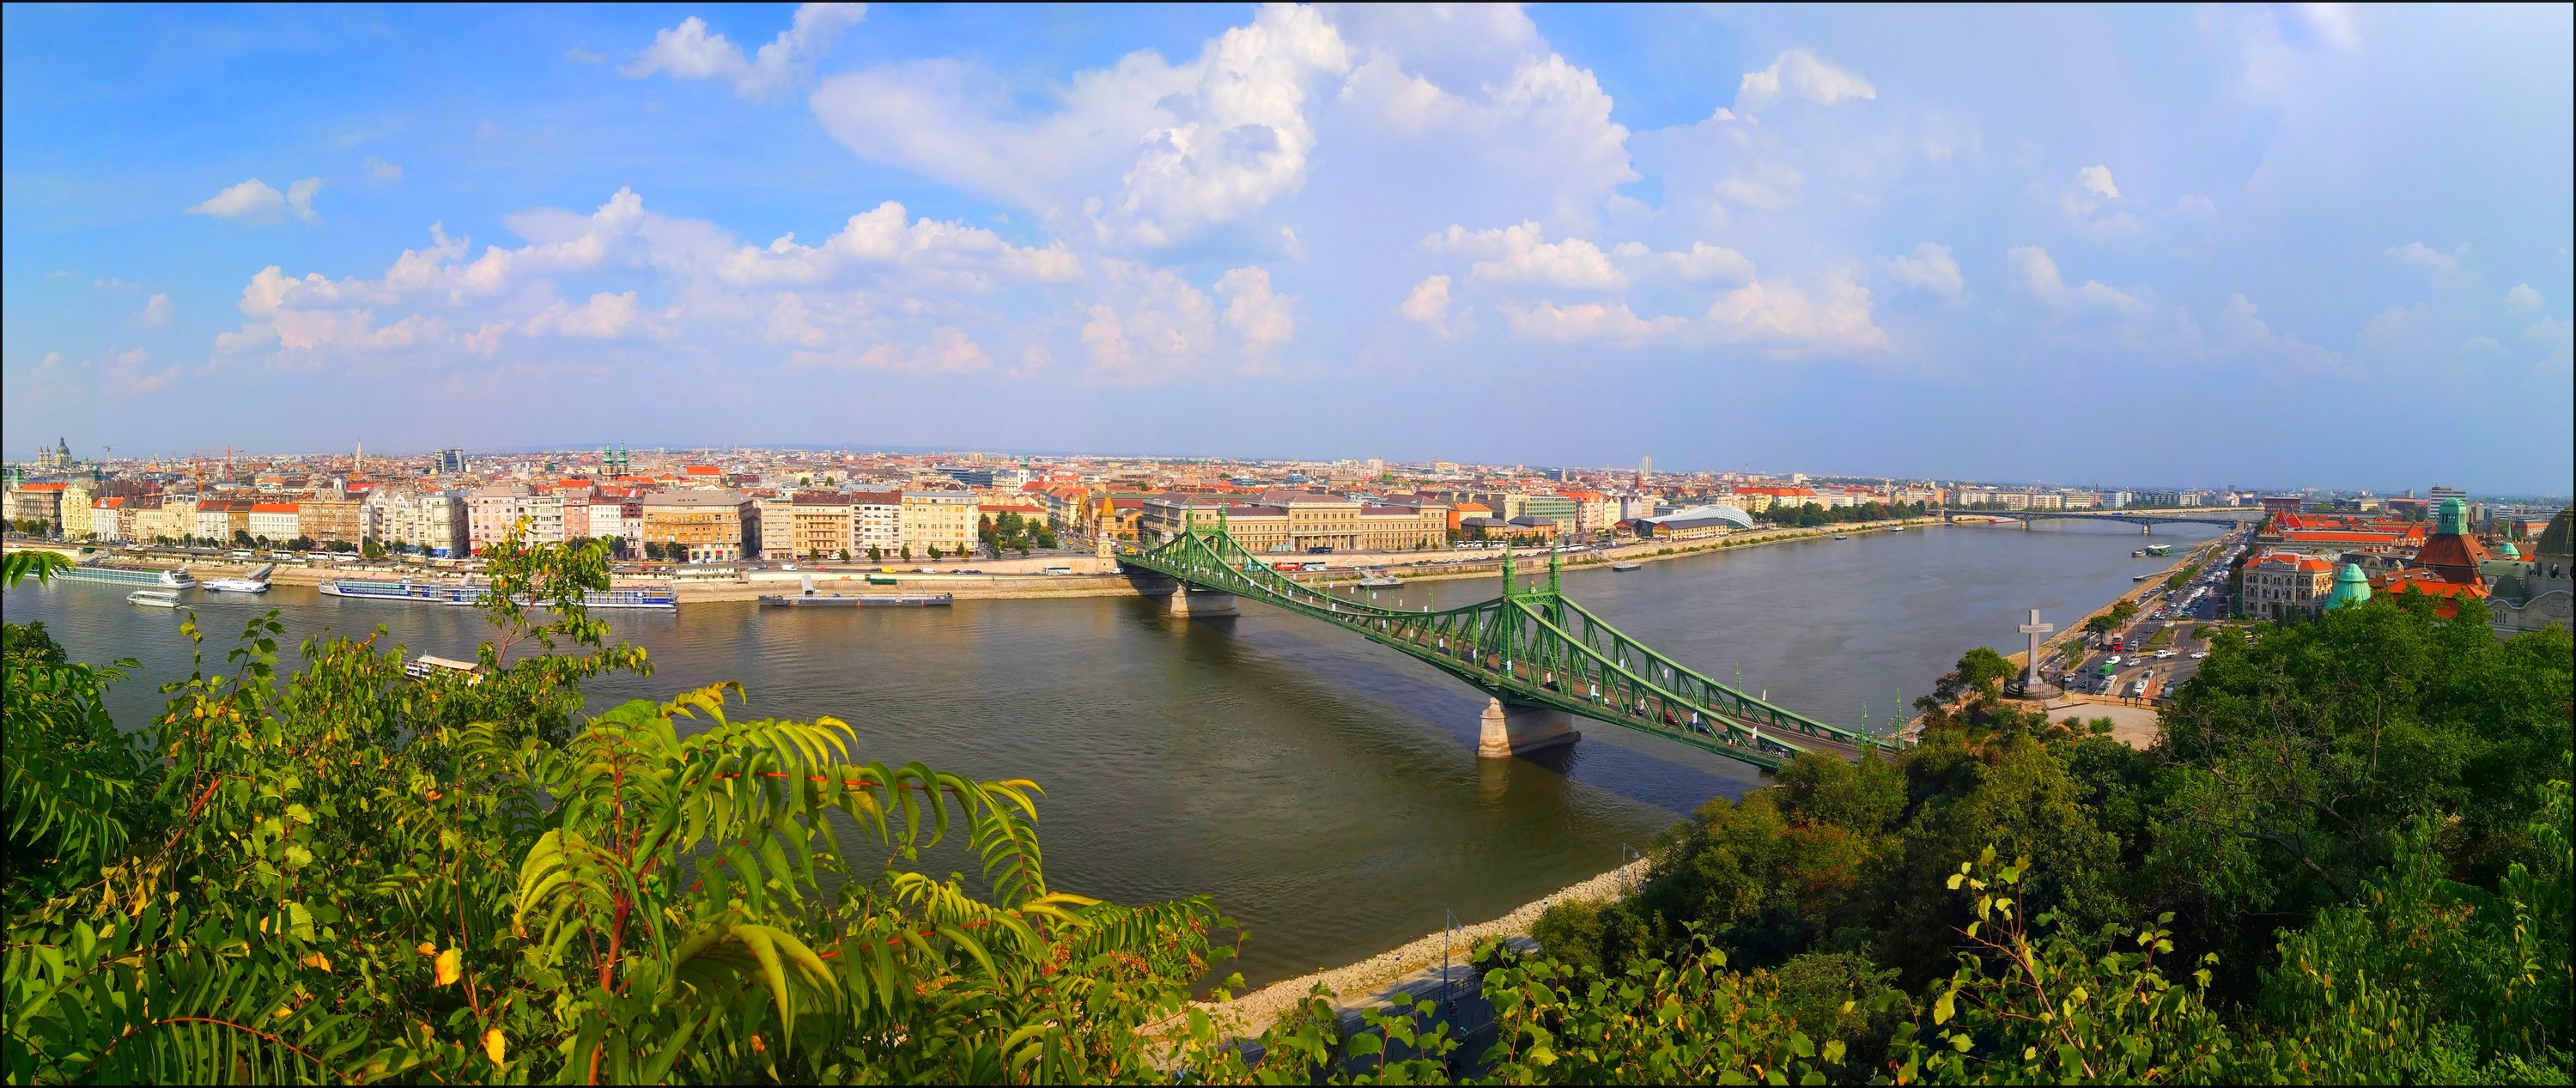 liberty bridge panorama